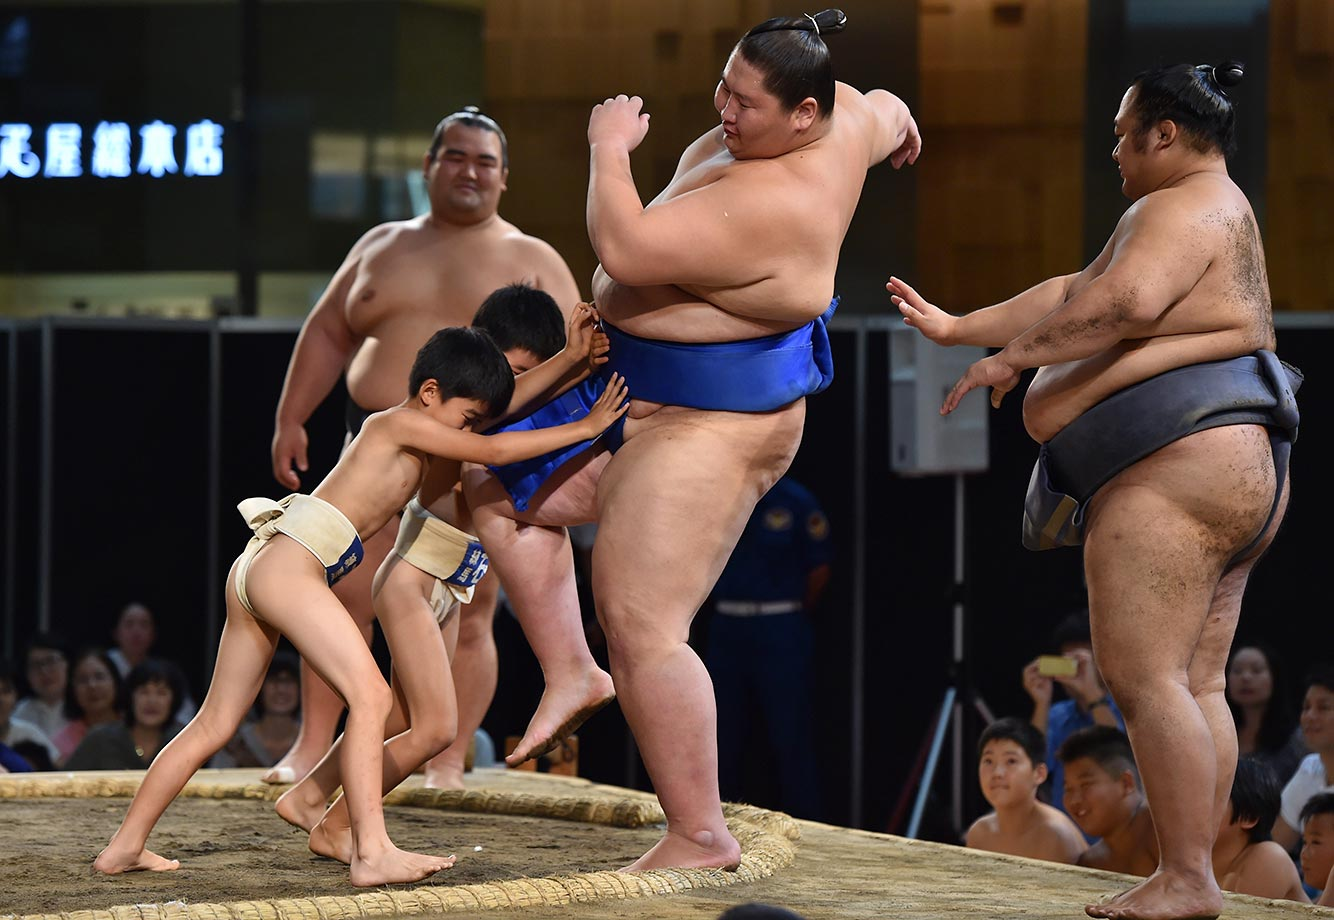 Junior sumo wrestlers push professional sumo wrestler Ichinojo out of the ring during an exhibition in Tokyo.